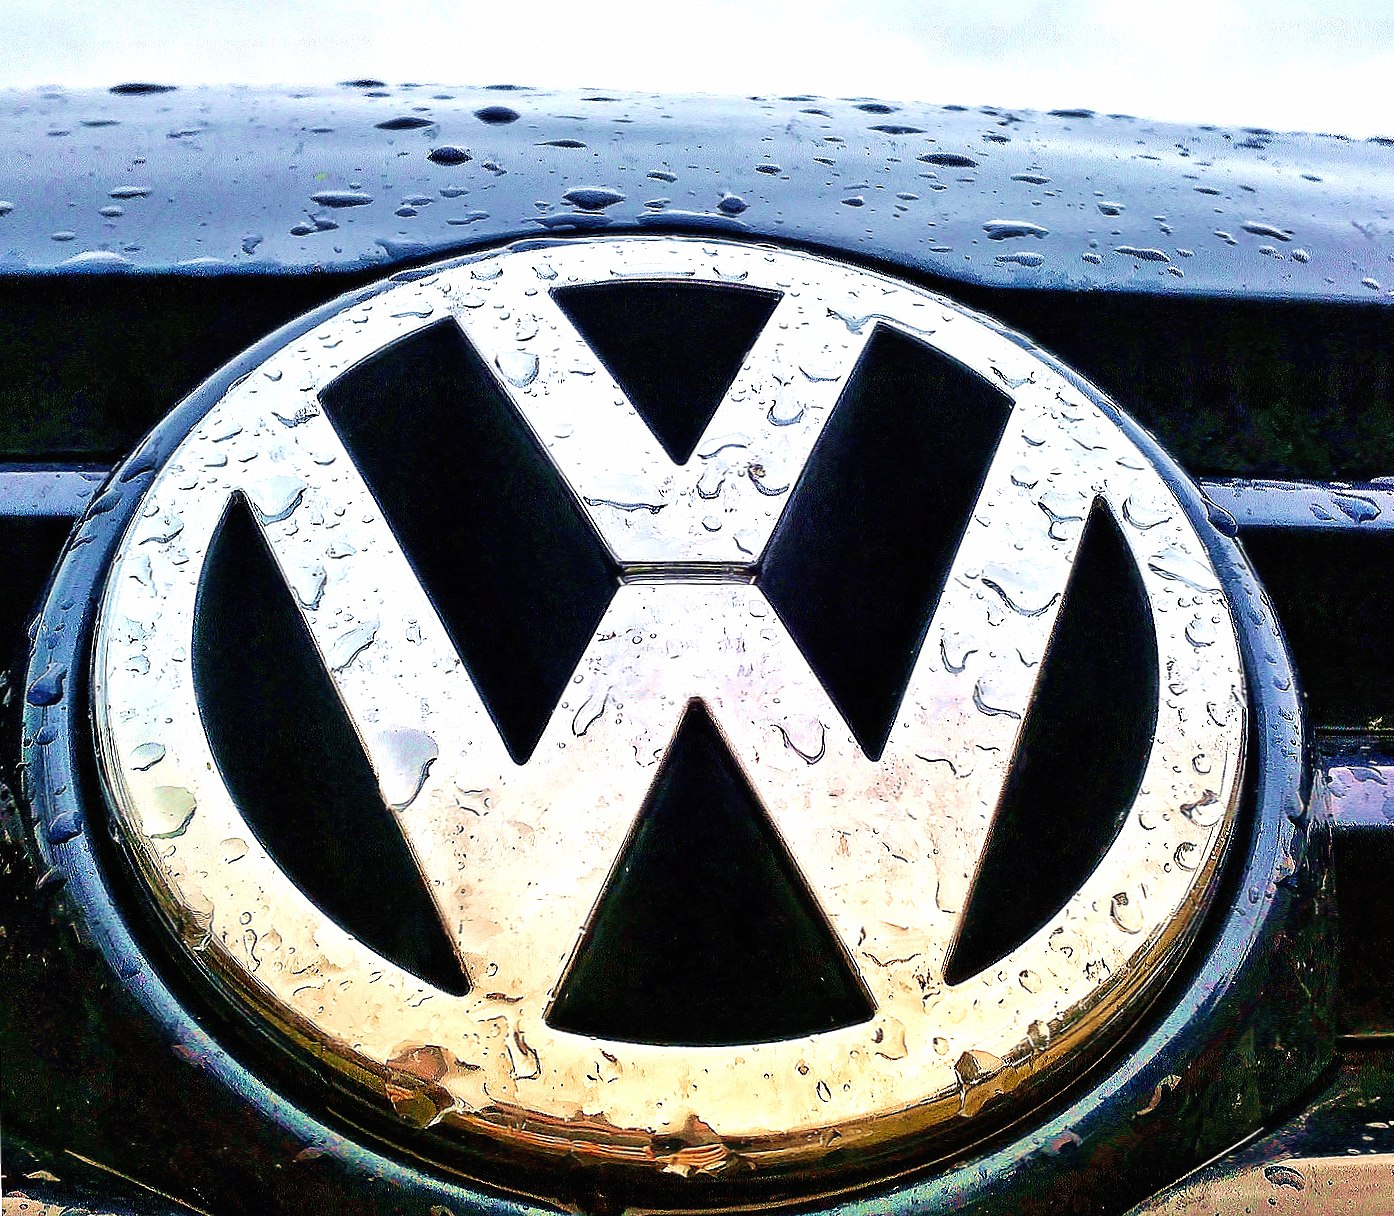 vw tdi at 320 x 480 iPhone size wallpapers HD quality